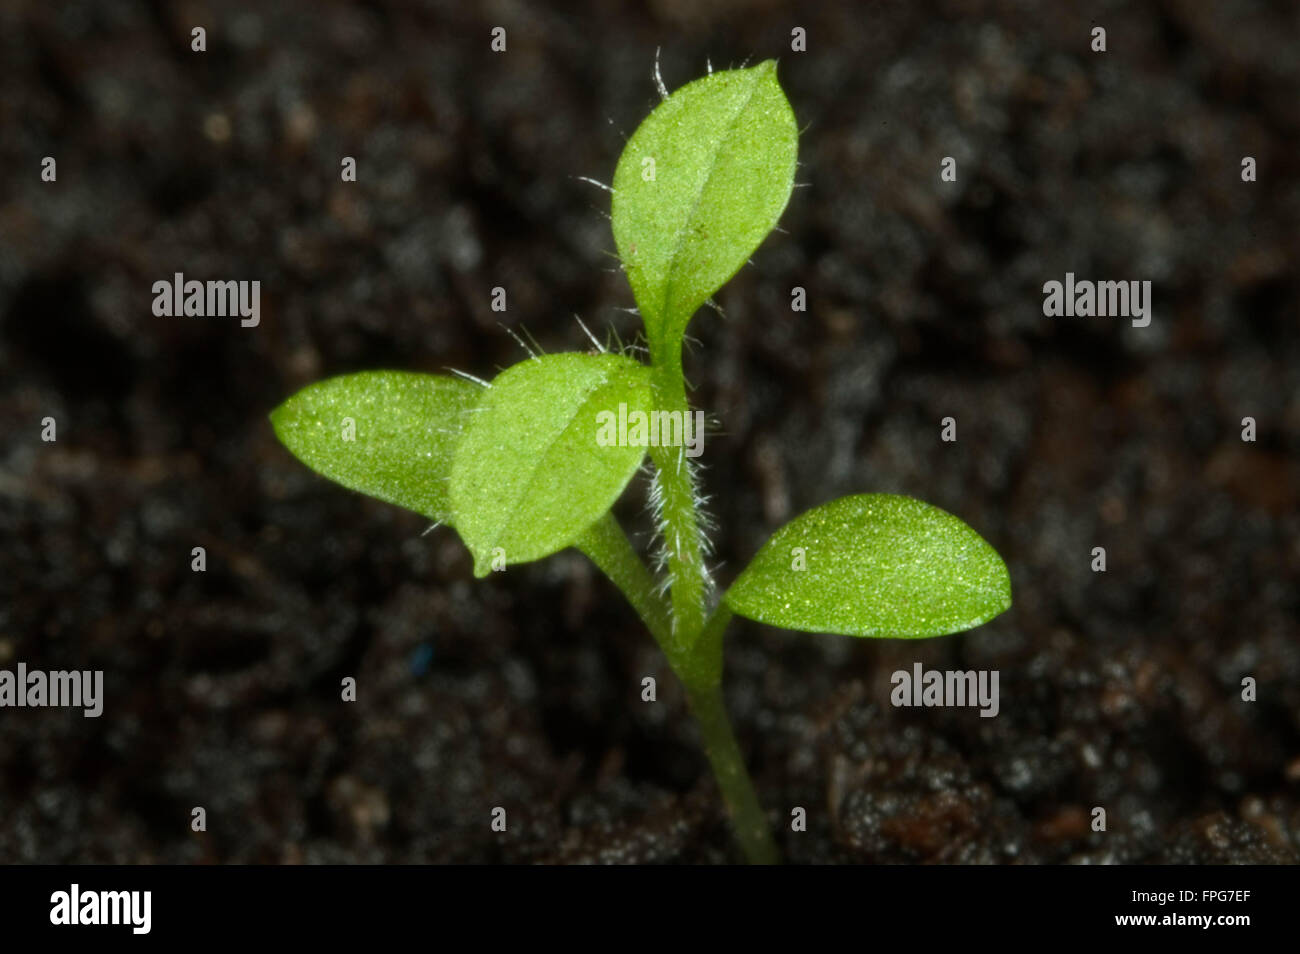 Seedling chickweed, Stellaria media, with cotyledons and first true leaves of annual weed Stock Photo